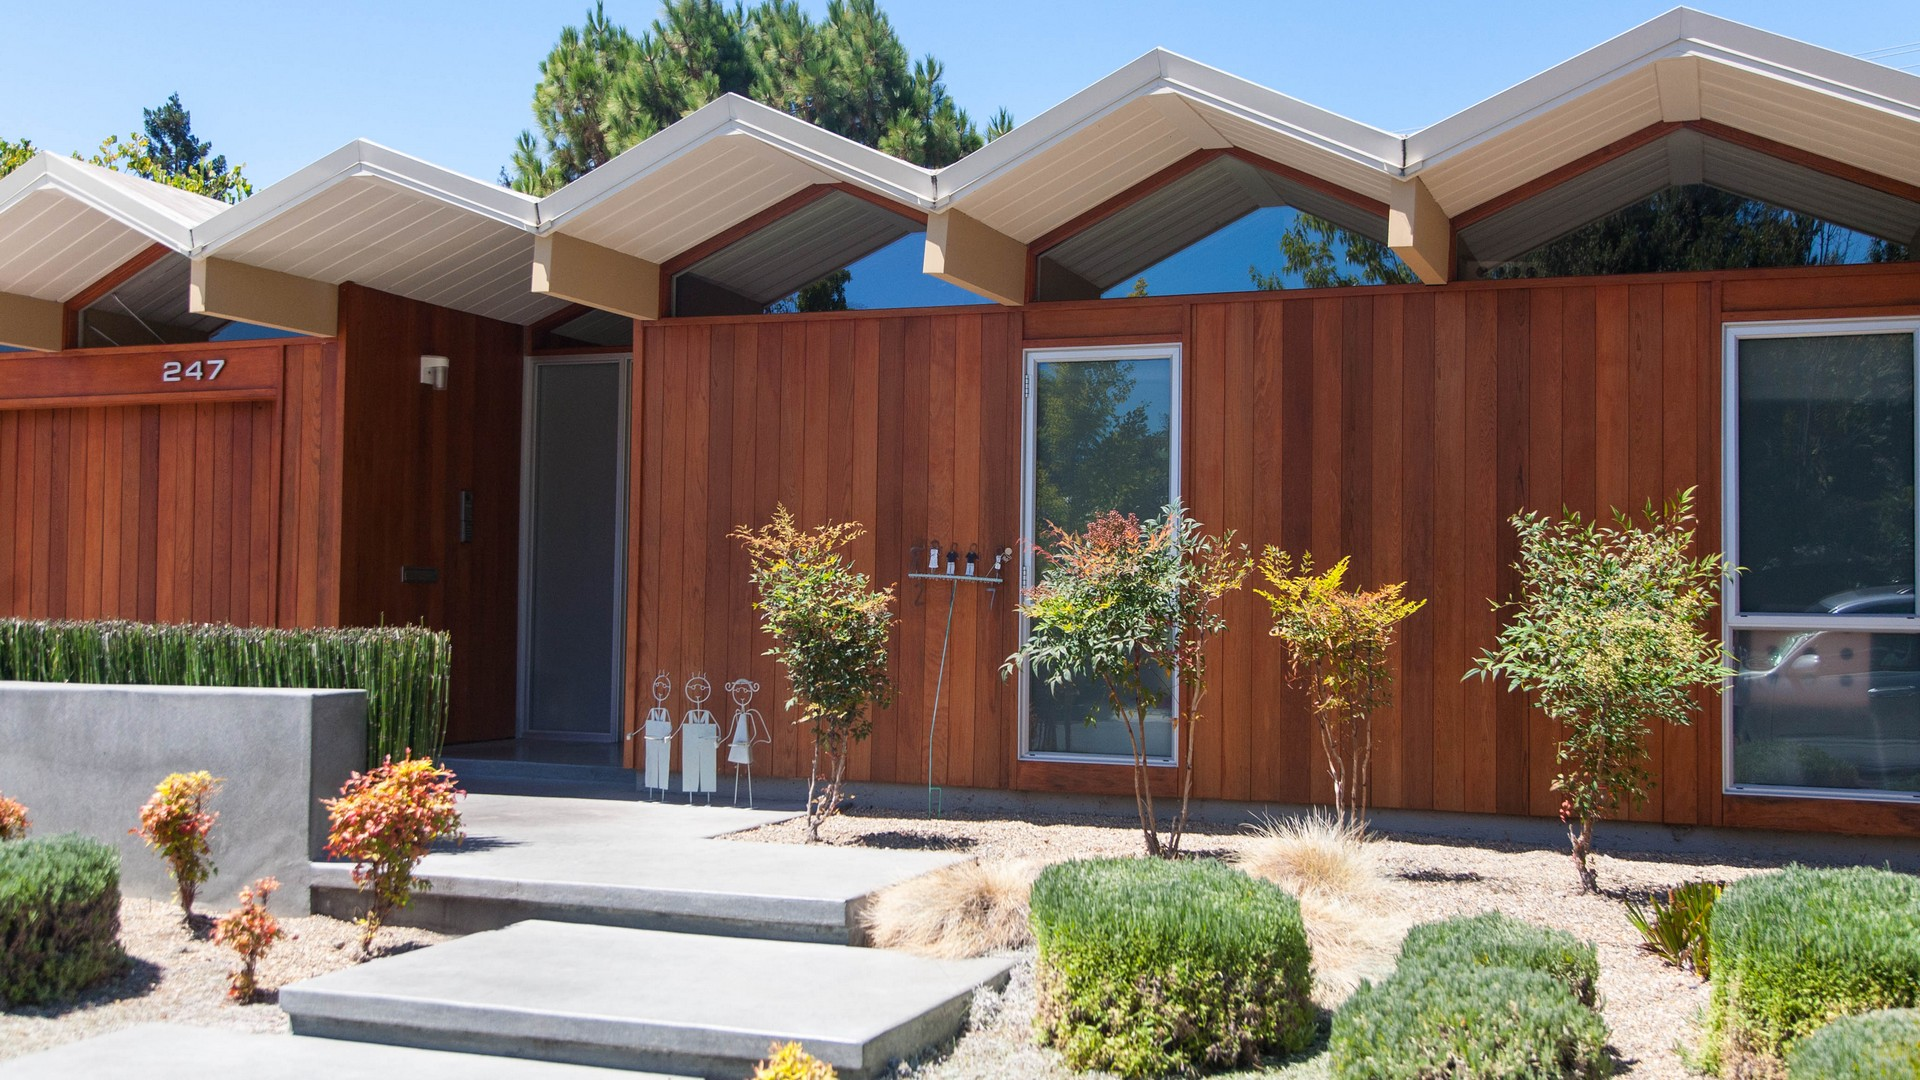 Eichler And The Future Of Mid-Century Modern Architecture